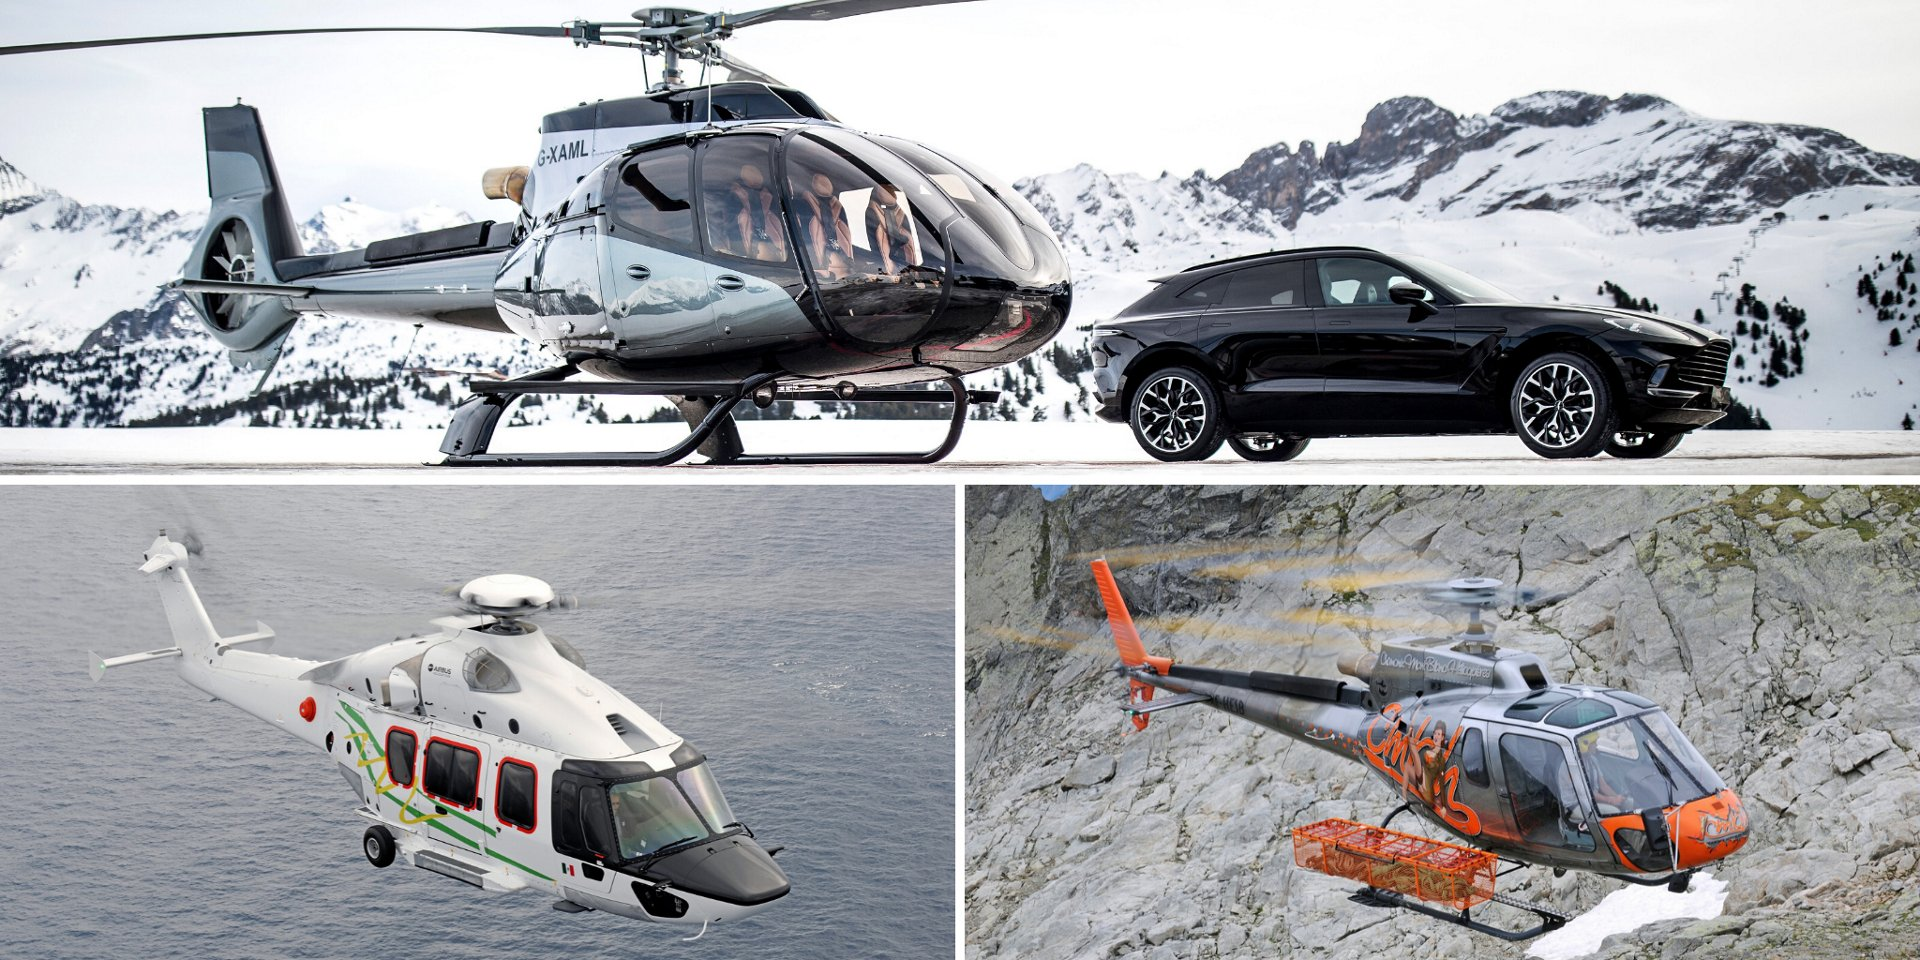 Airbus Helicopters will be showcasing its civil range of helicopters at Heli-Expo 2020, which runs from 28-30 January at the Anaheim Convention Center in California.